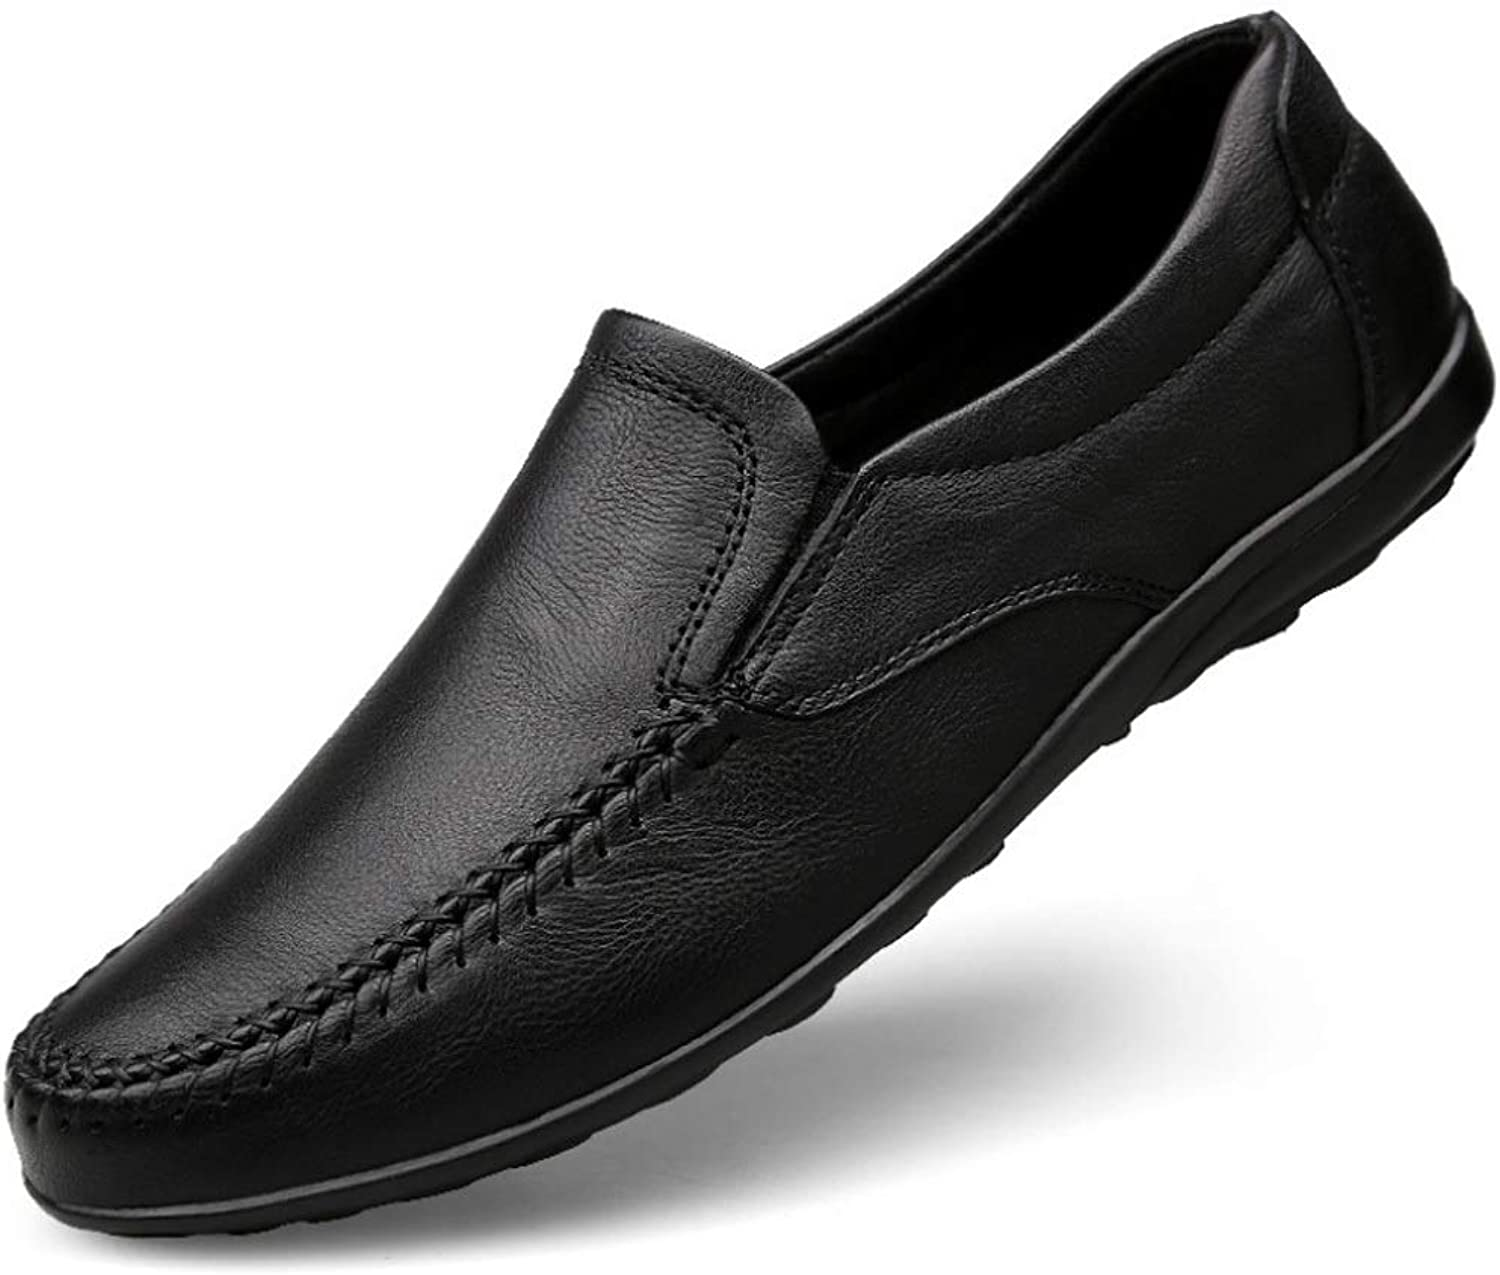 Men's Leather Low Cut shoes Comfort Flats Business shoes Driving shoes Loafer Flats Boat shoes Moccasin-Gommino